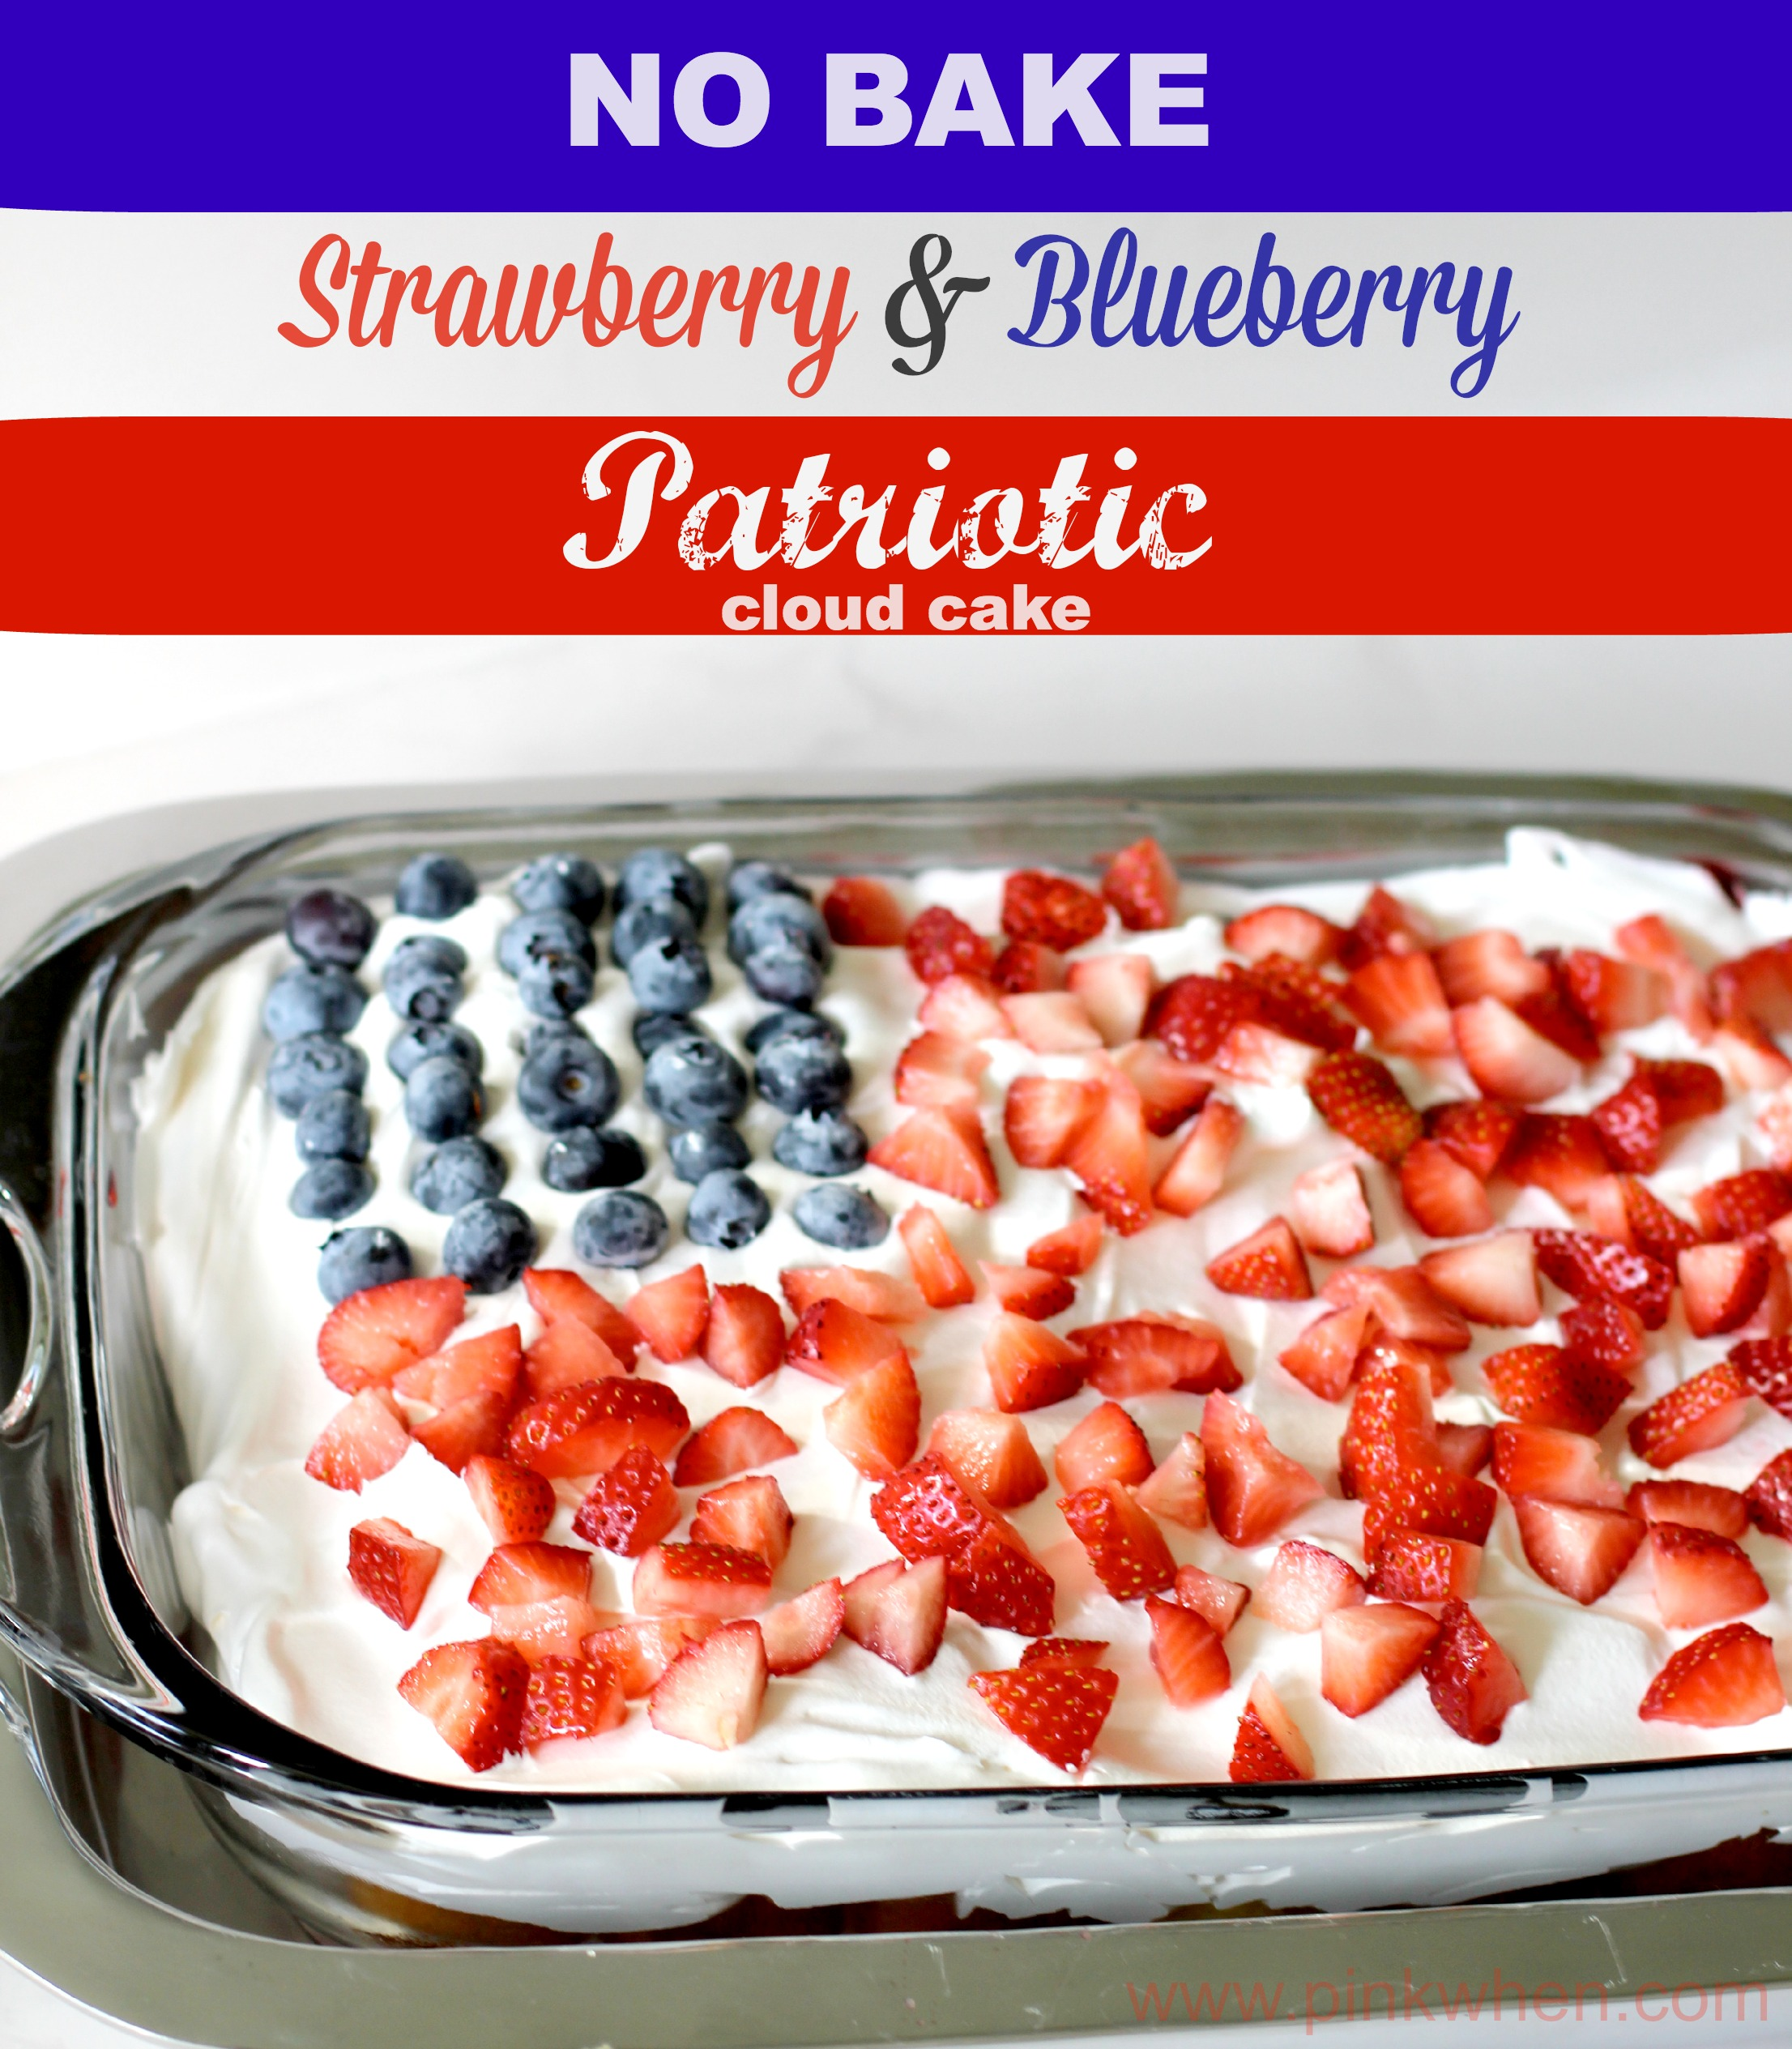 All Created - No Bake Flag Cake